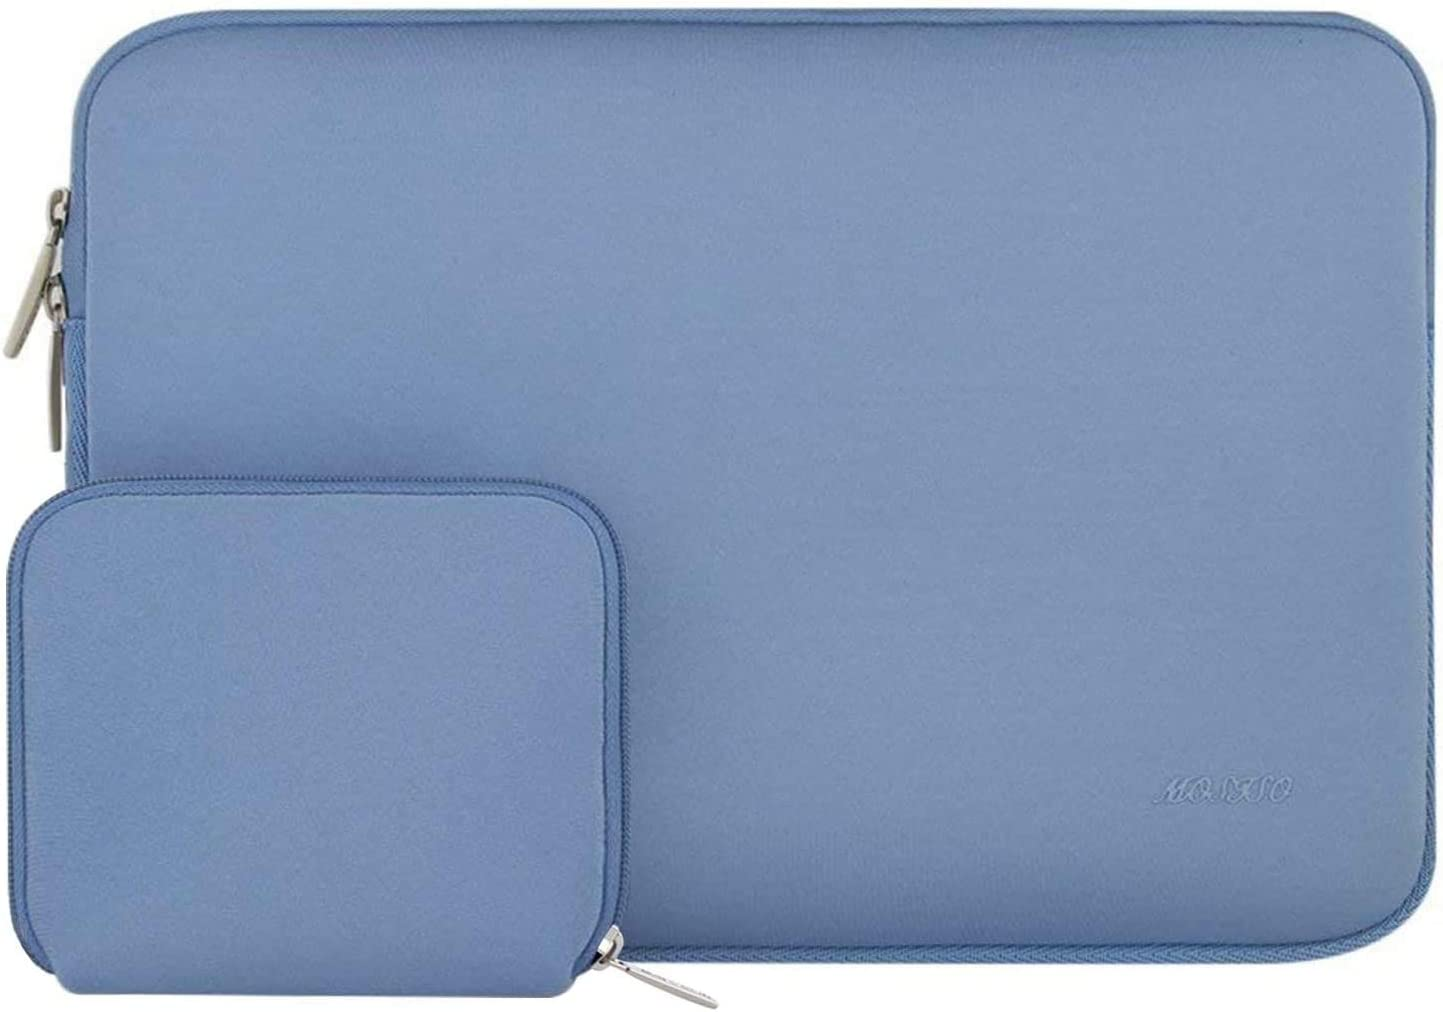 MOSISO Laptop Sleeve Compatible with 13-13.3 inch MacBook Pro, MacBook Air, Notebook Computer, Water Repellent Neoprene Bag with Small Case, Serenity Blue